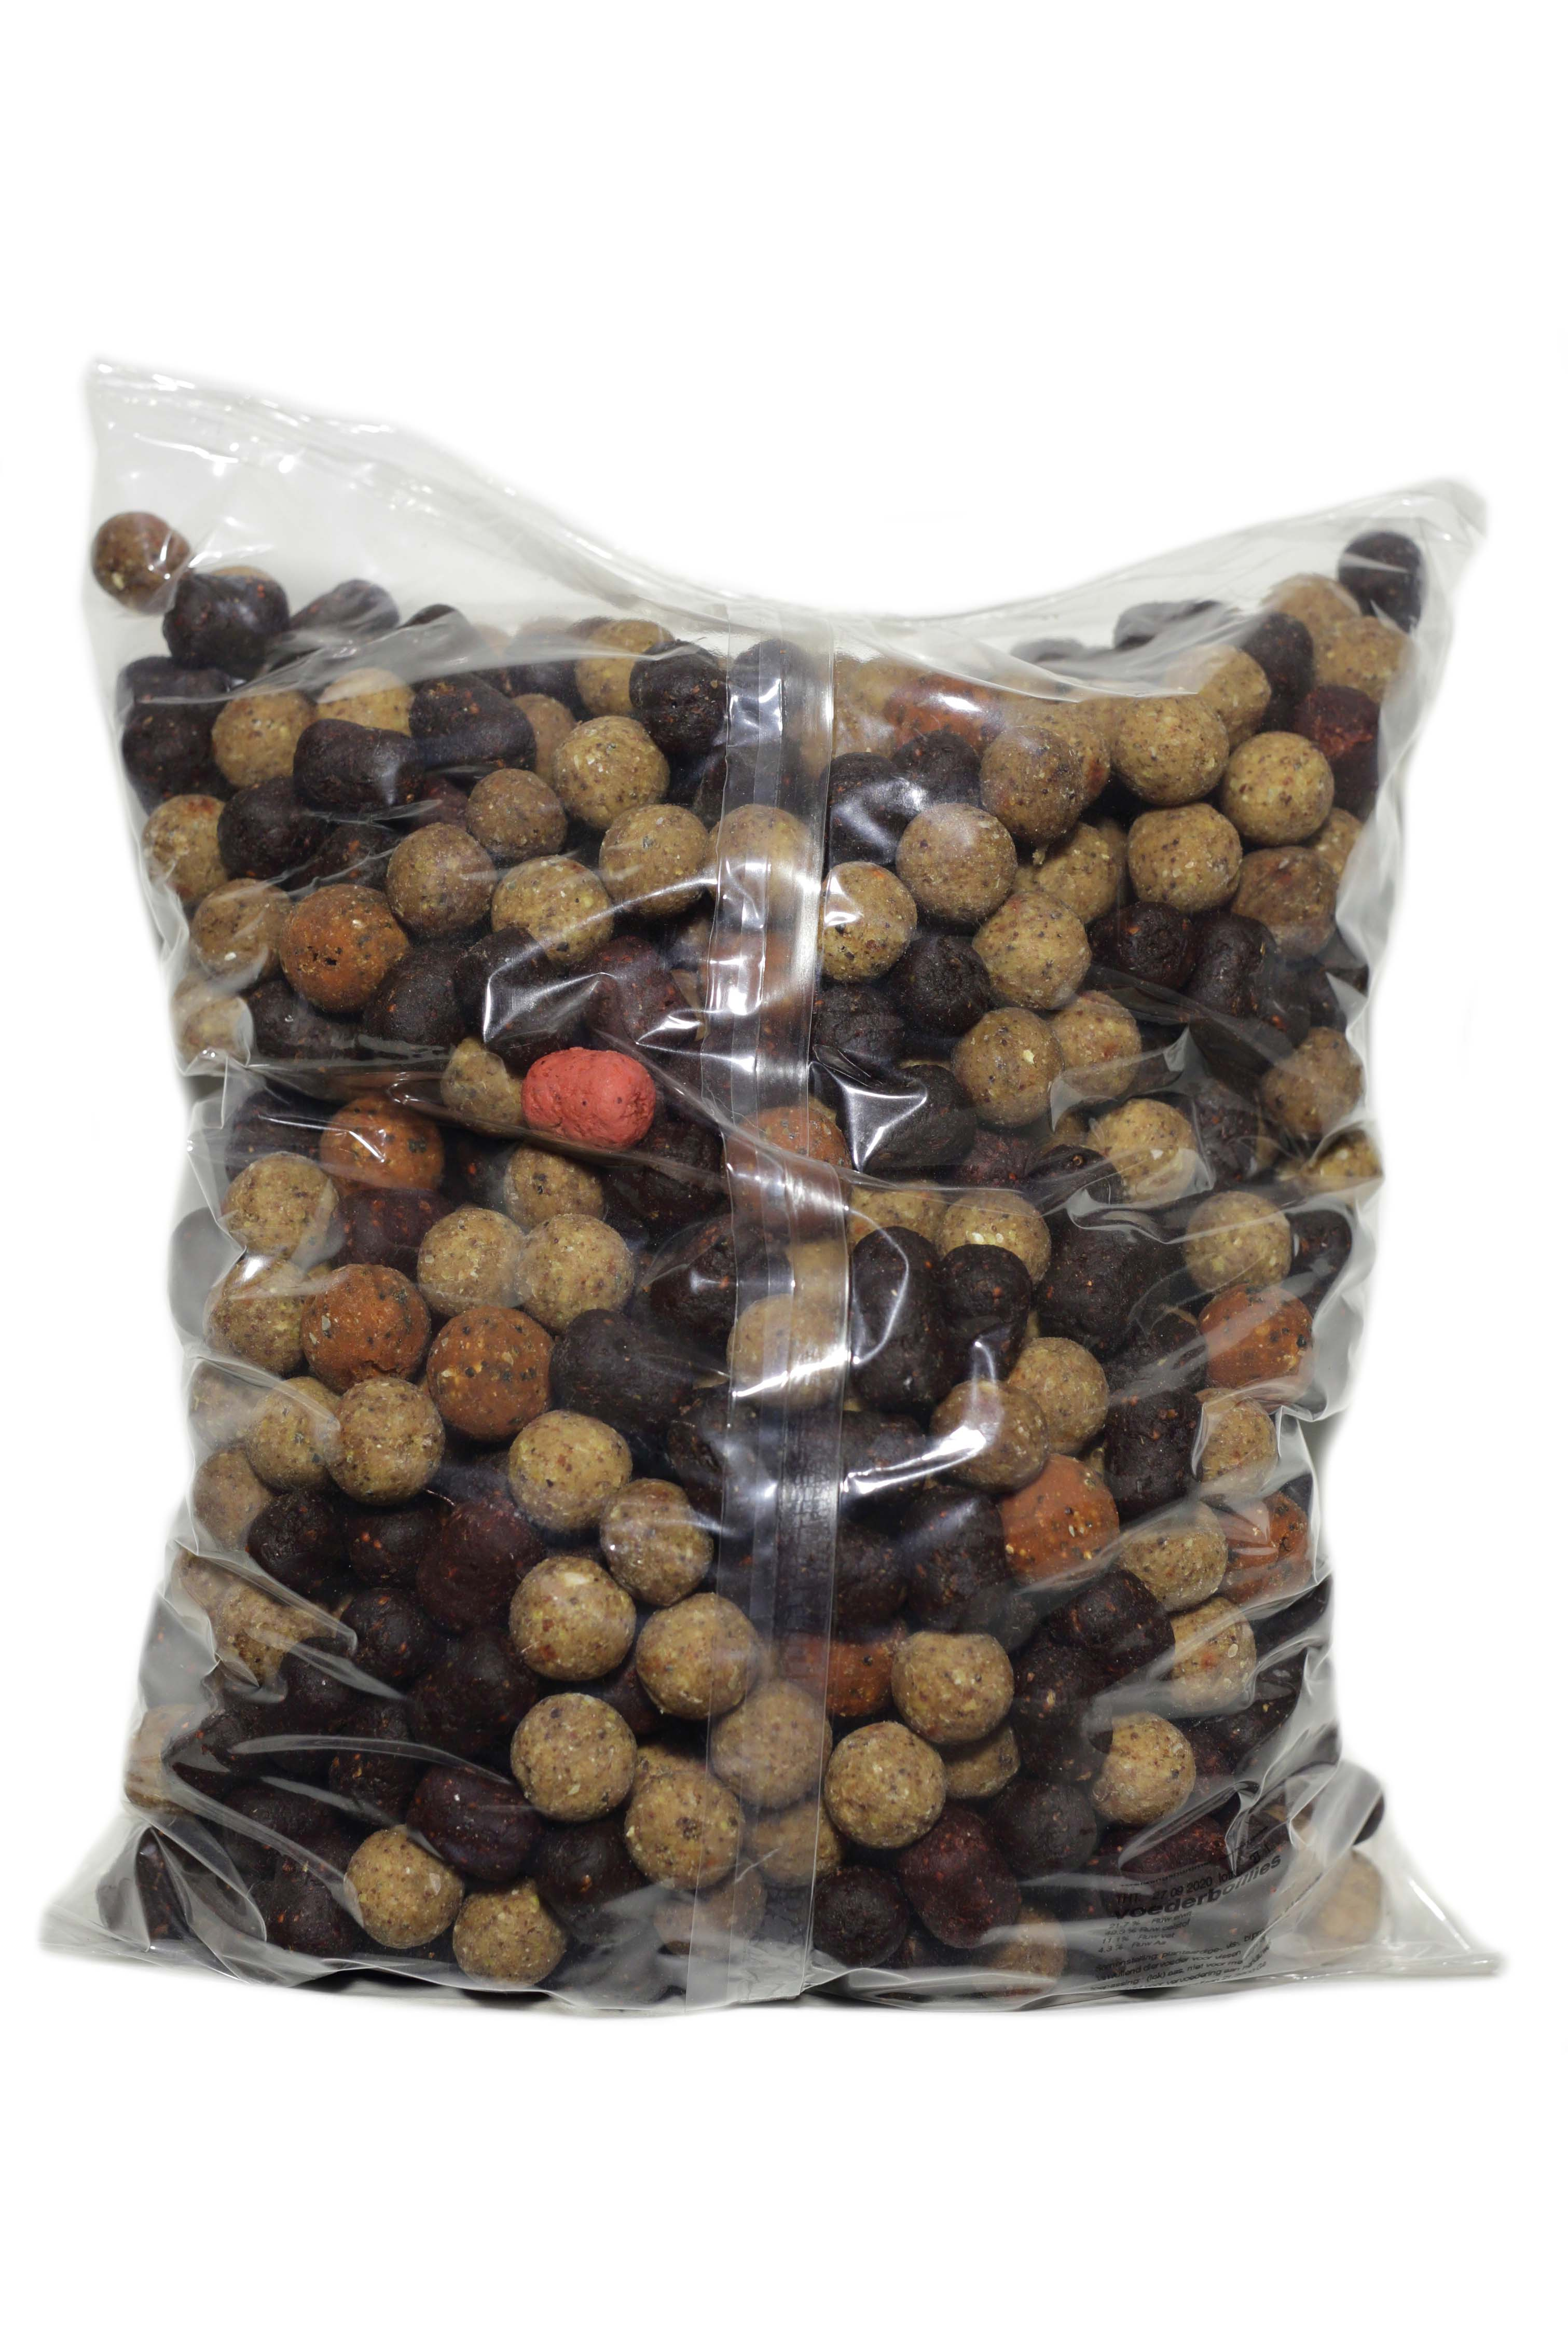 Prebaiting Ready Mades mix